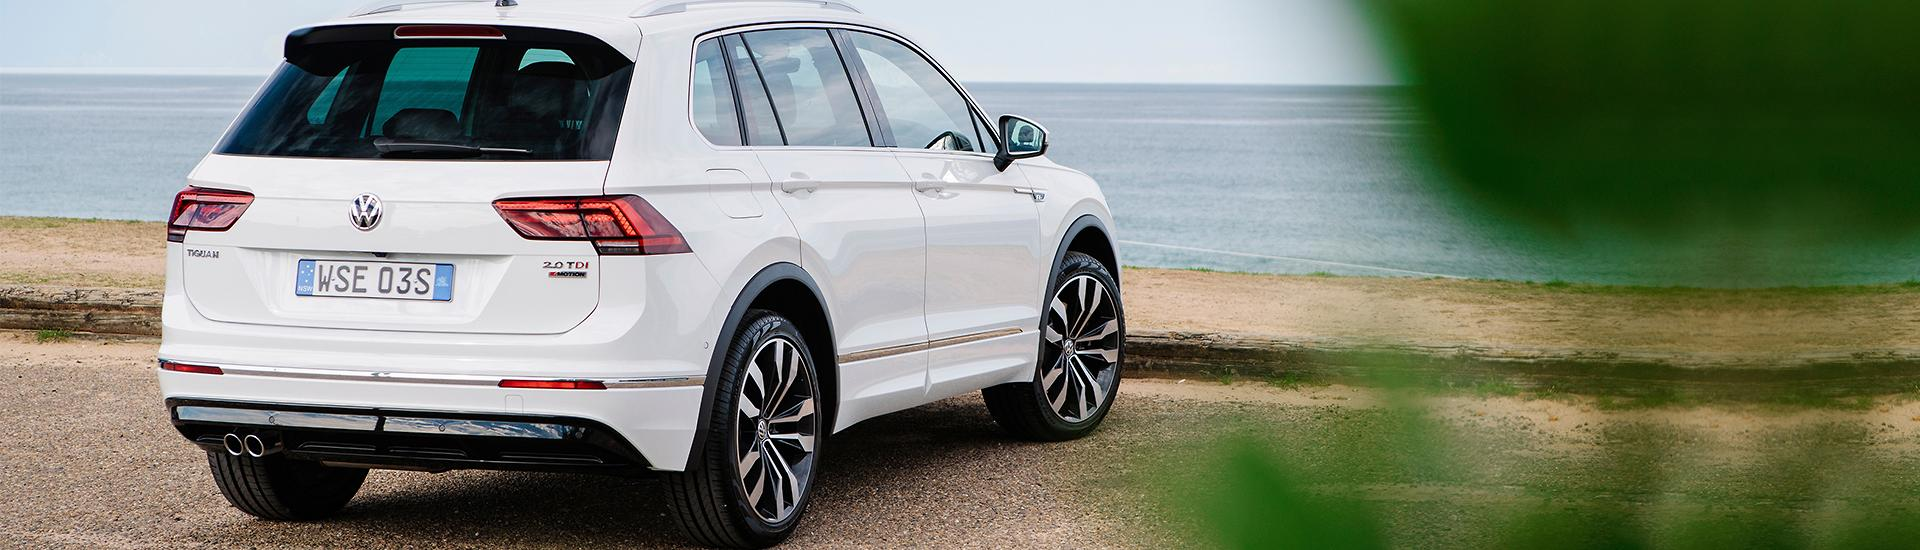 new volkswagen tiguan suv cars for sale - carsales.au